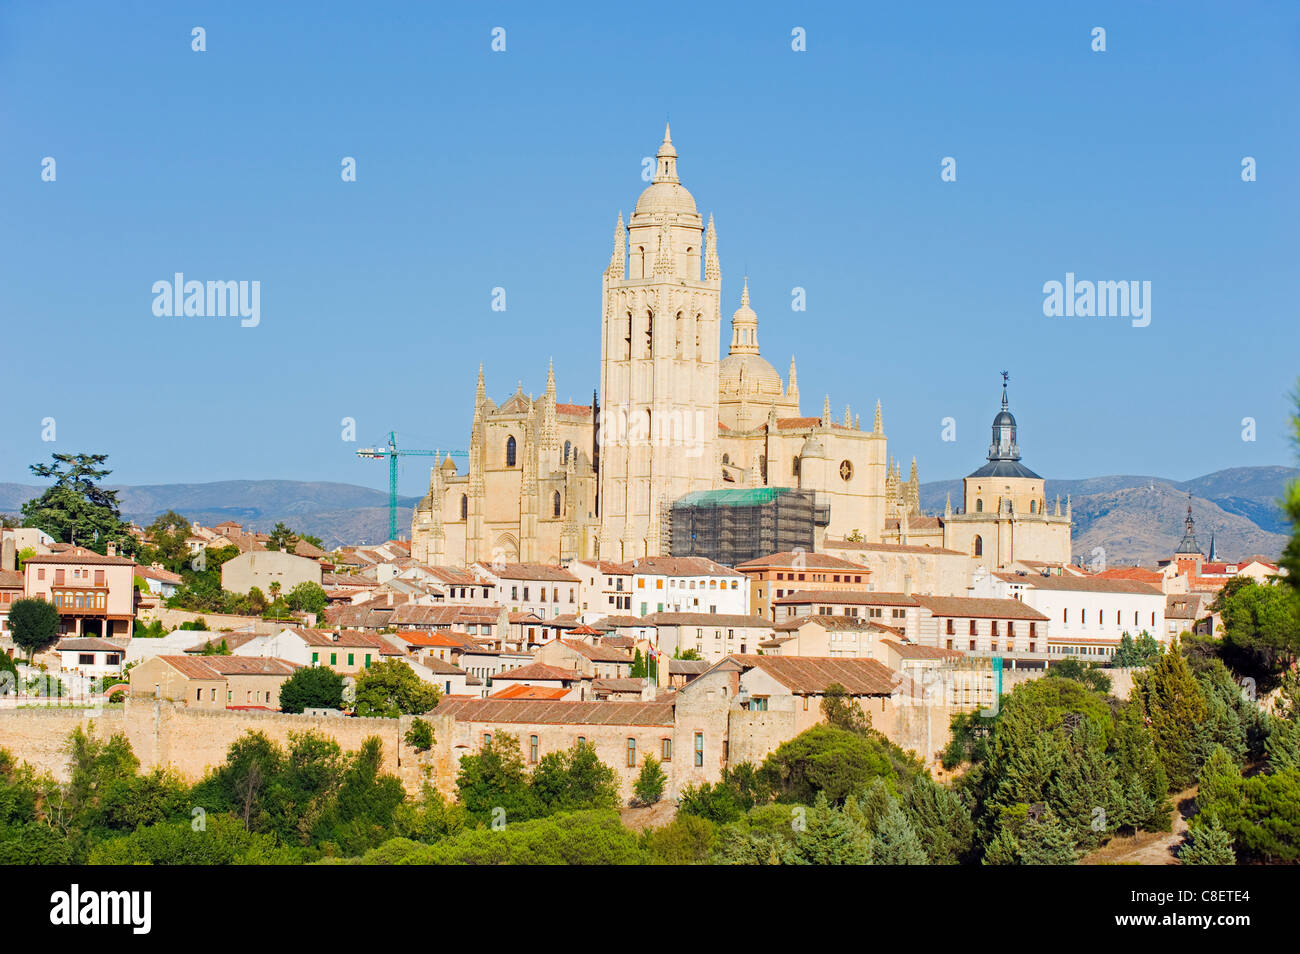 Gothic style Segovia Cathedral dating from 1577, UNESCO World Heritage Site, Segovia, Madrid, Spain - Stock Image